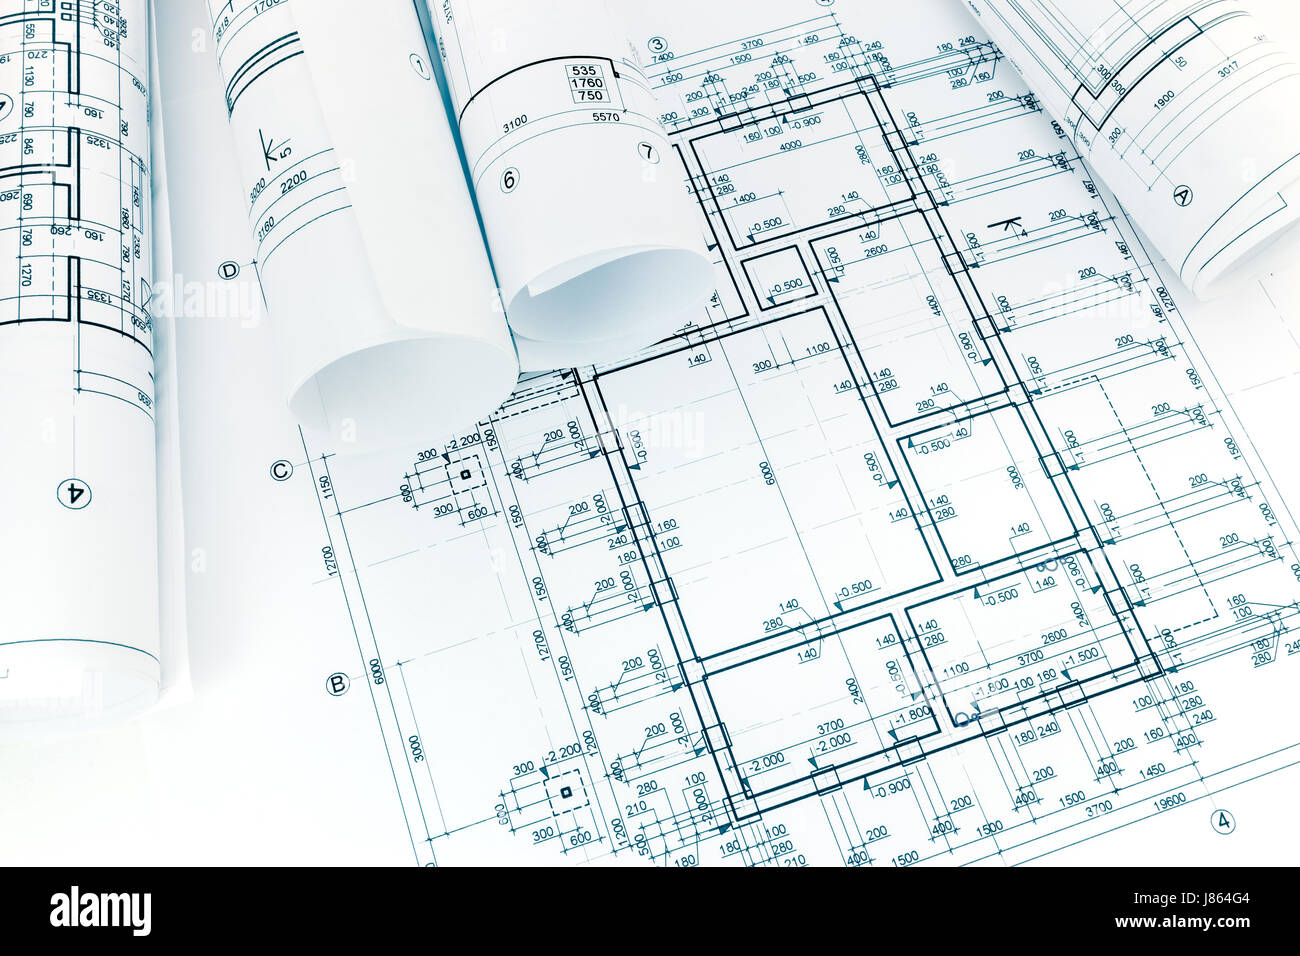 Rolled building plans on architectural project blueprint background rolled building plans on architectural project blueprint background malvernweather Image collections